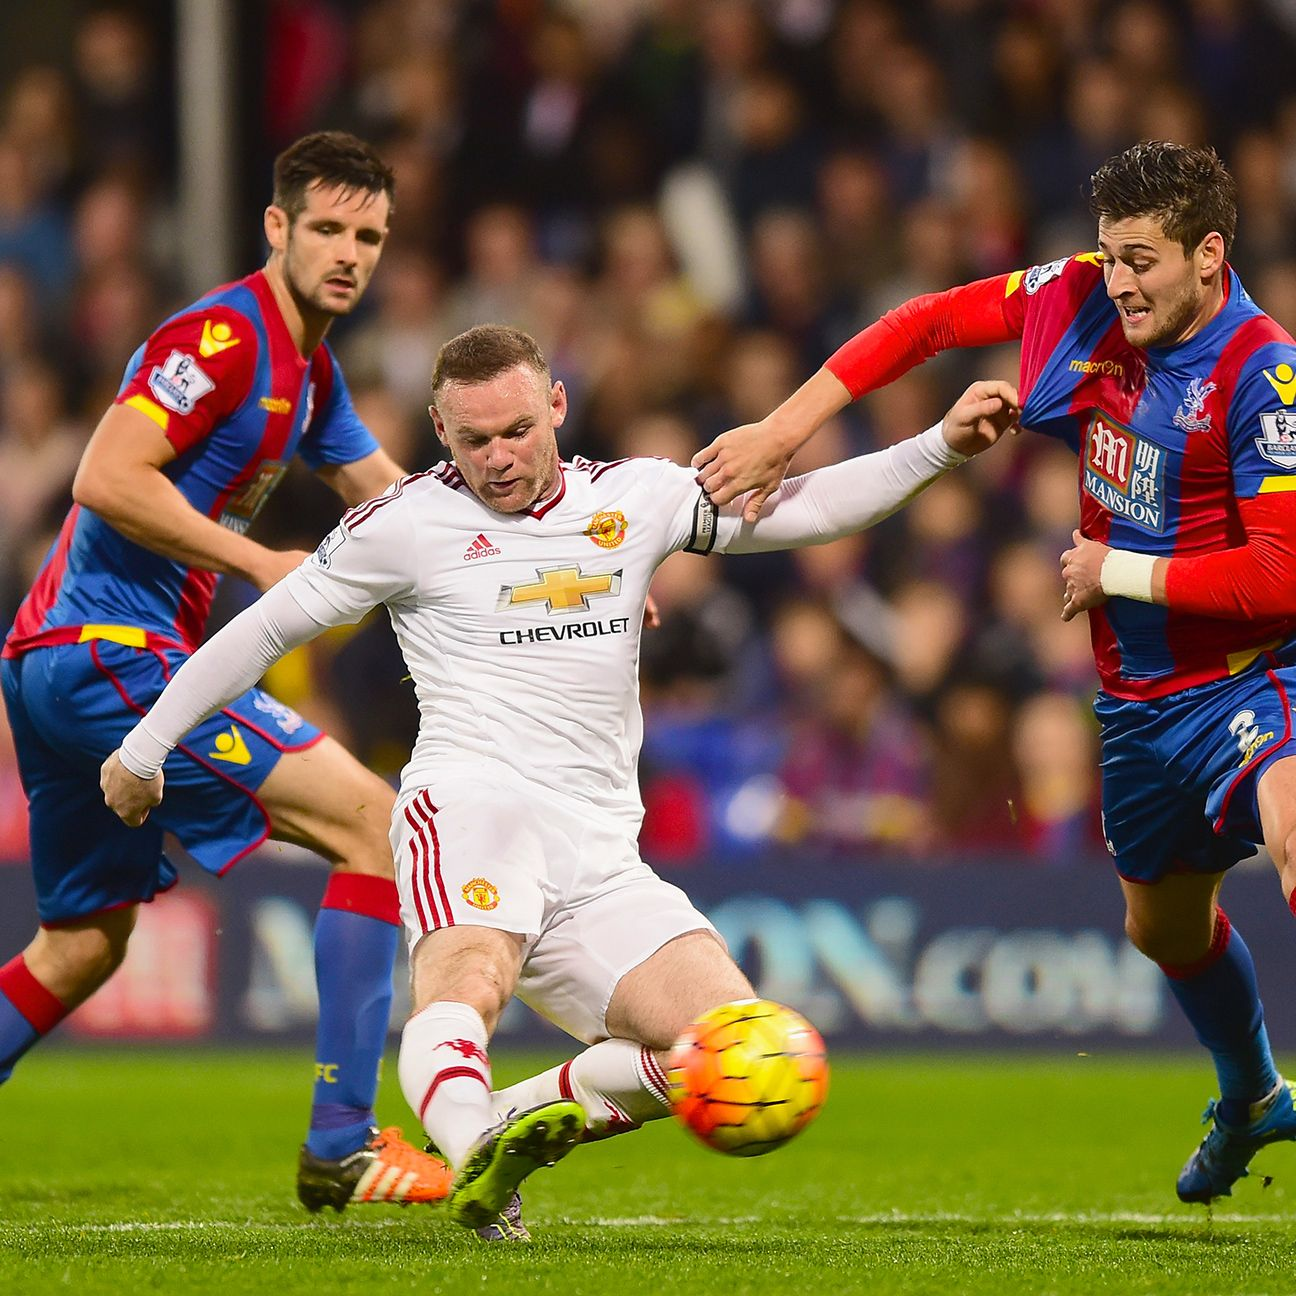 Wayne Rooney spurned several chances to snap Manchester United's goal drought.